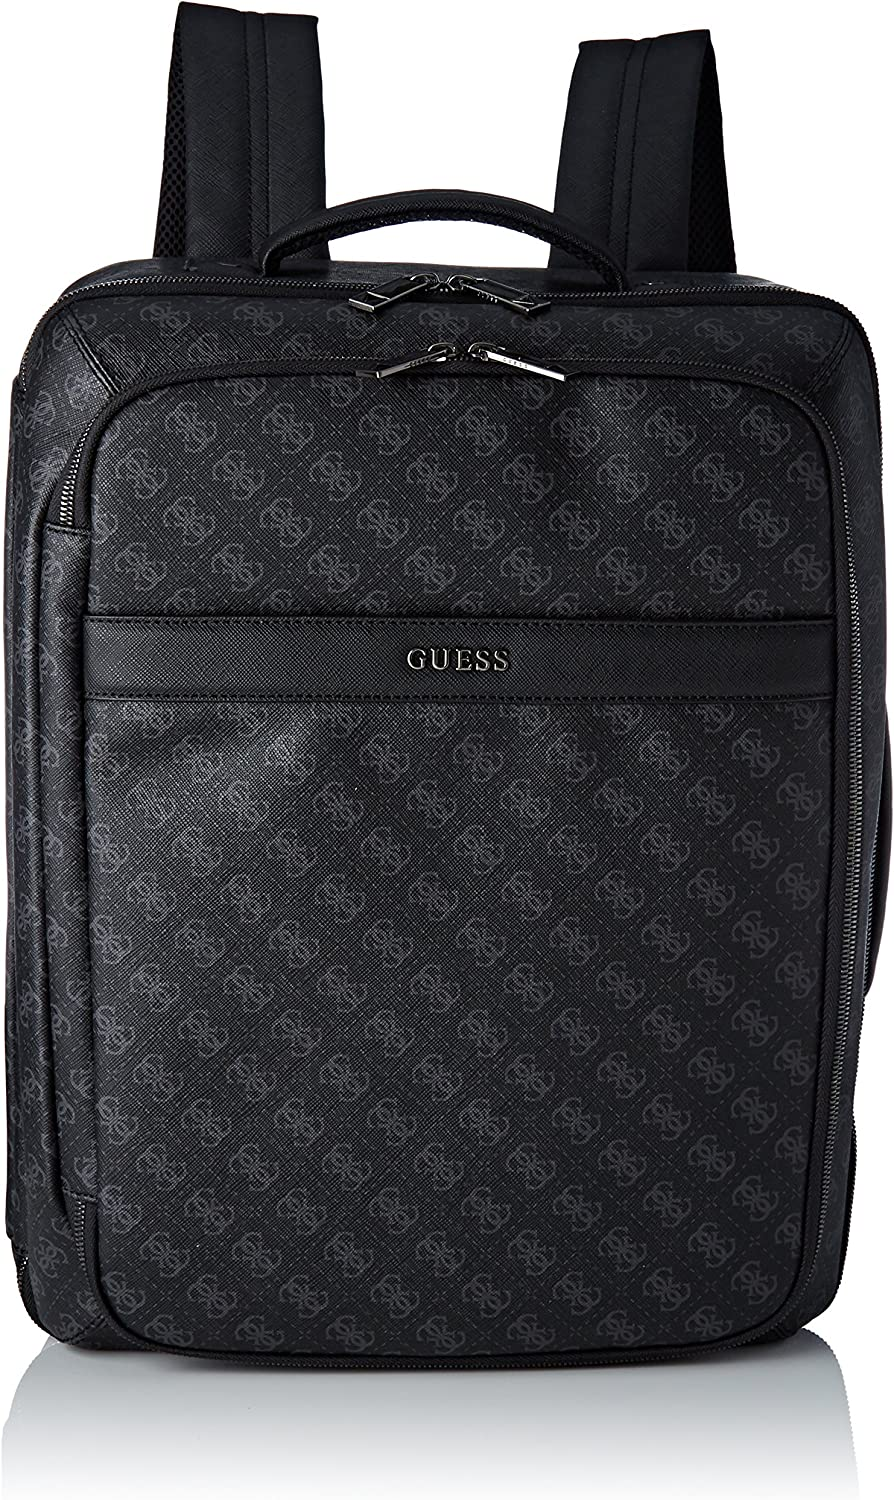 Guess Bags Backpack, Sacs à dos homme, Noir (Black